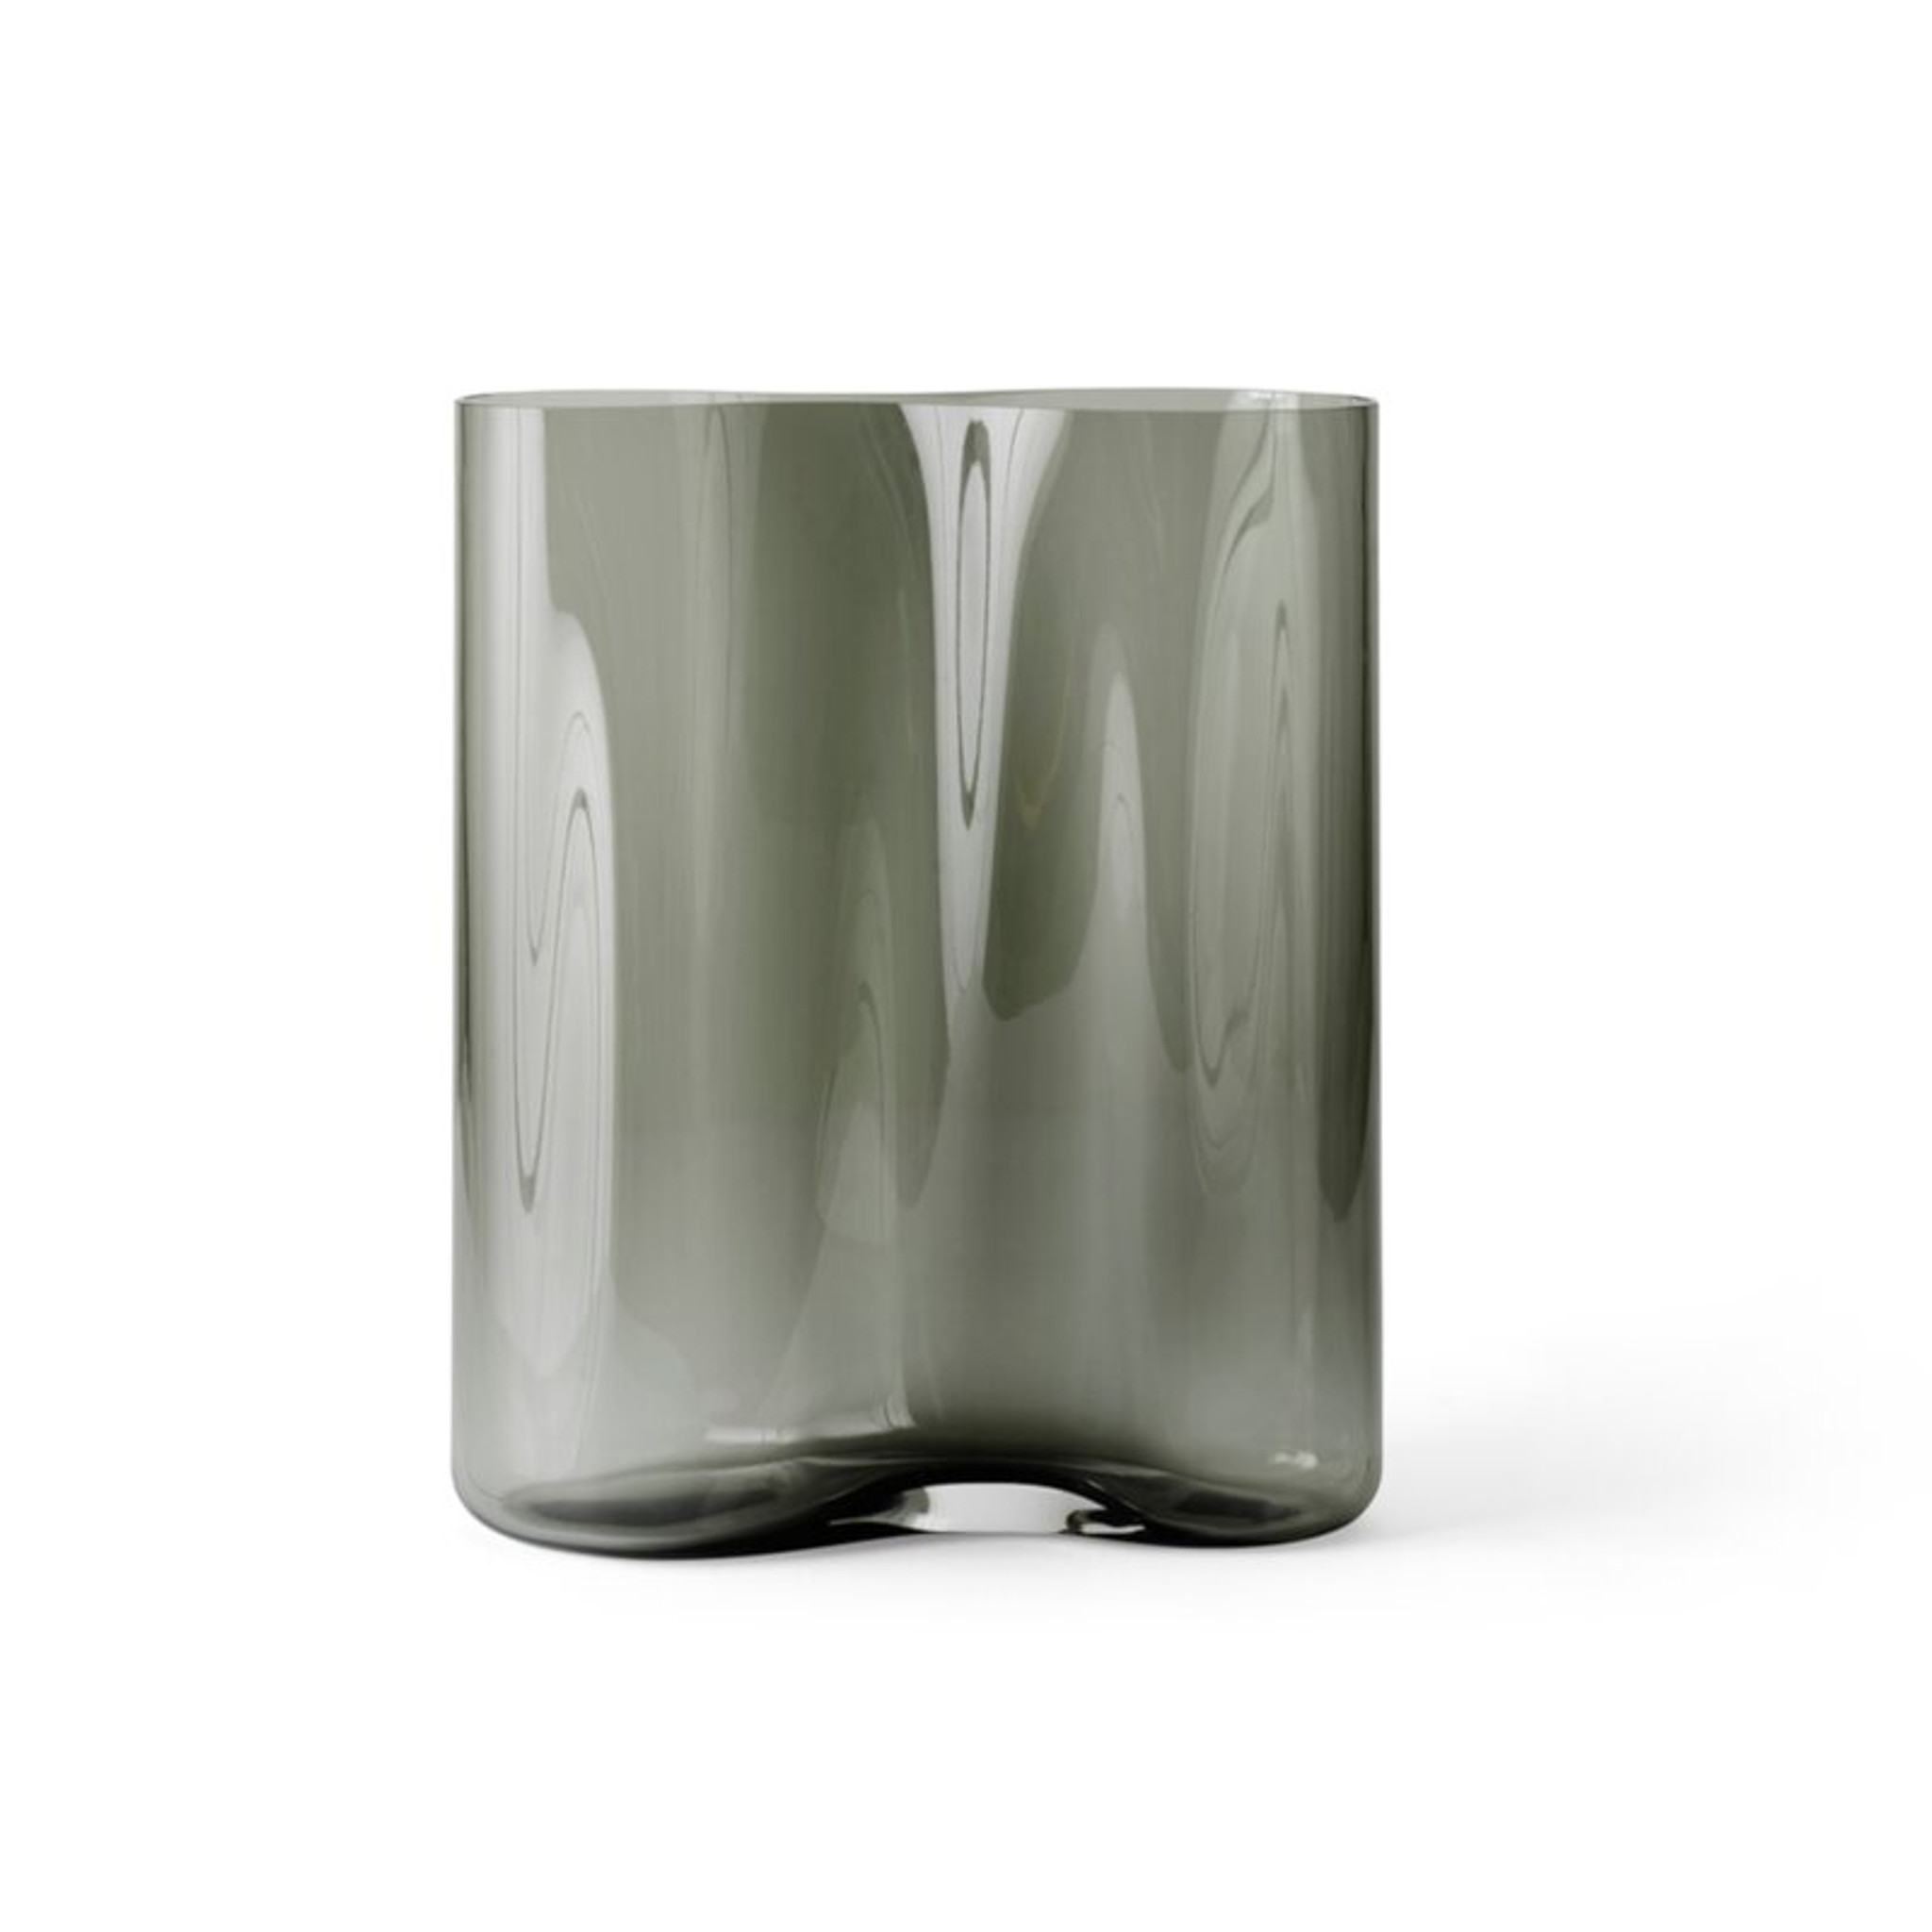 modern grey glass ripple wave pattern Aer Vases Smoked Glass Table Vase menu